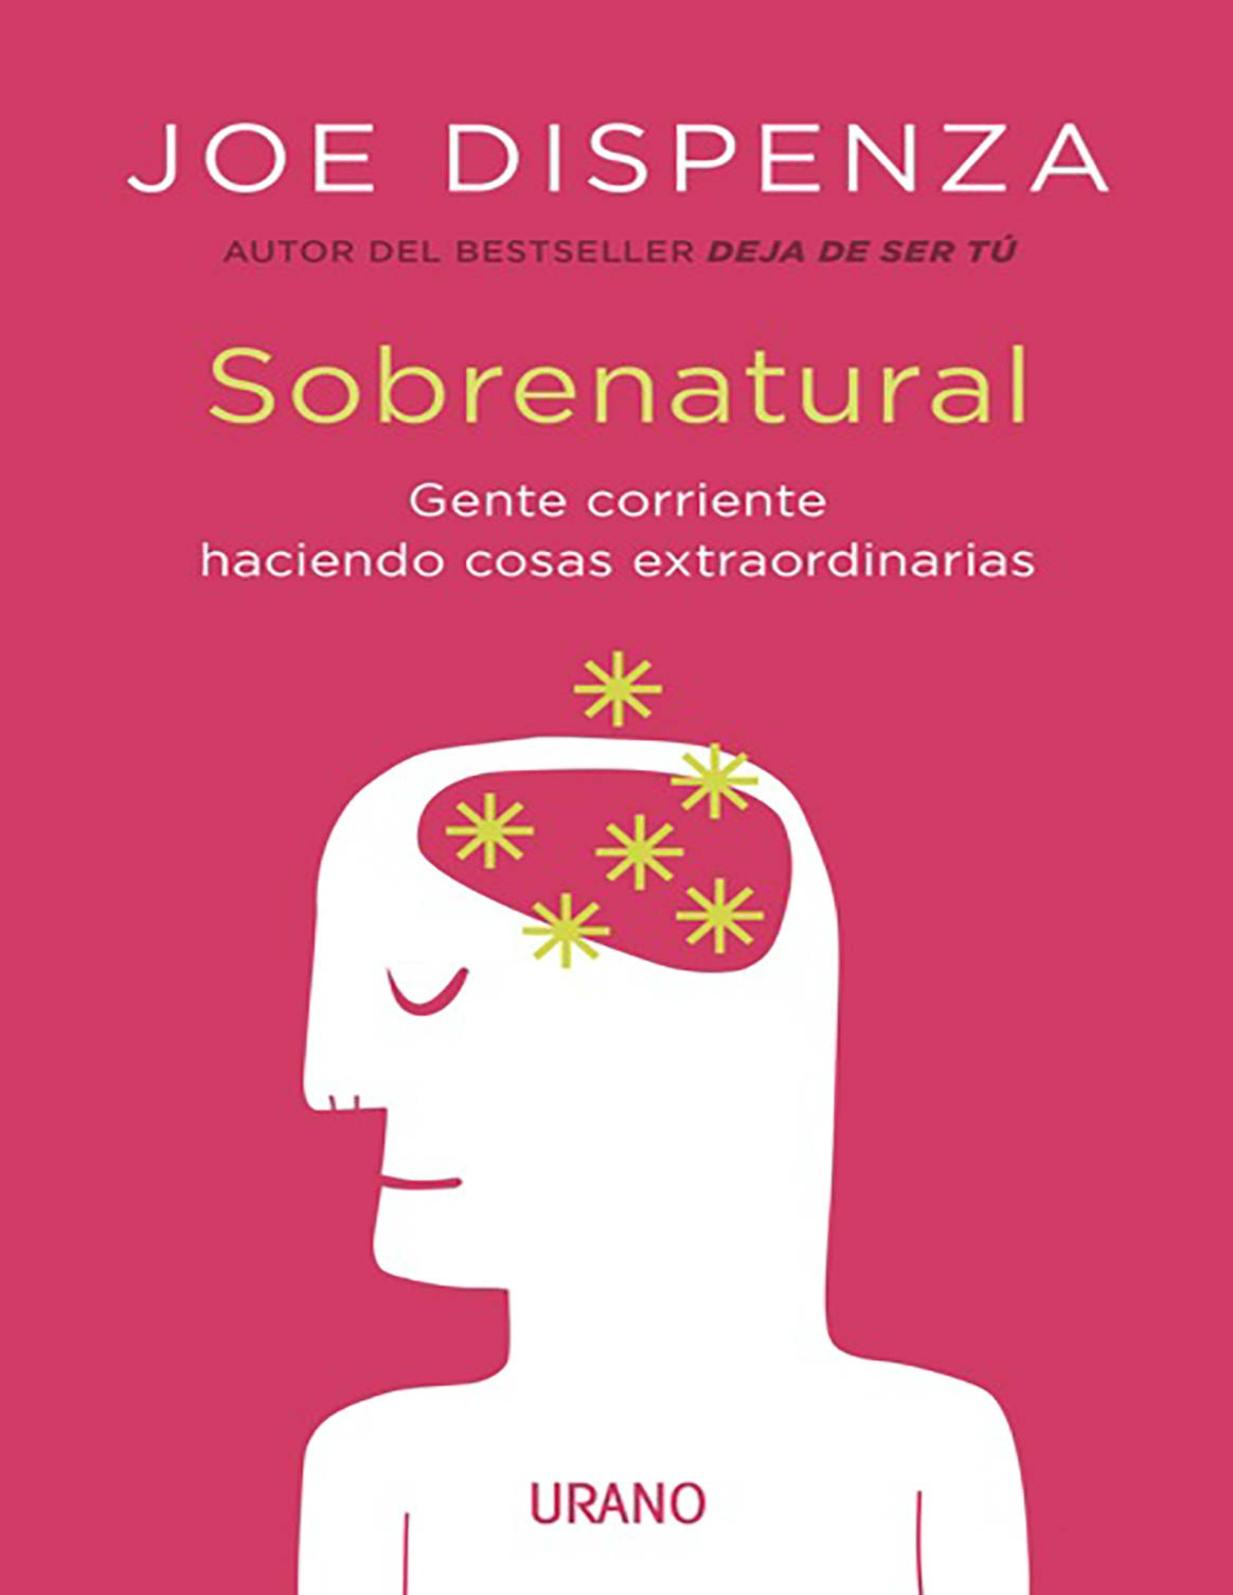 Calaméo - Sobrenatural Joe Dispenza